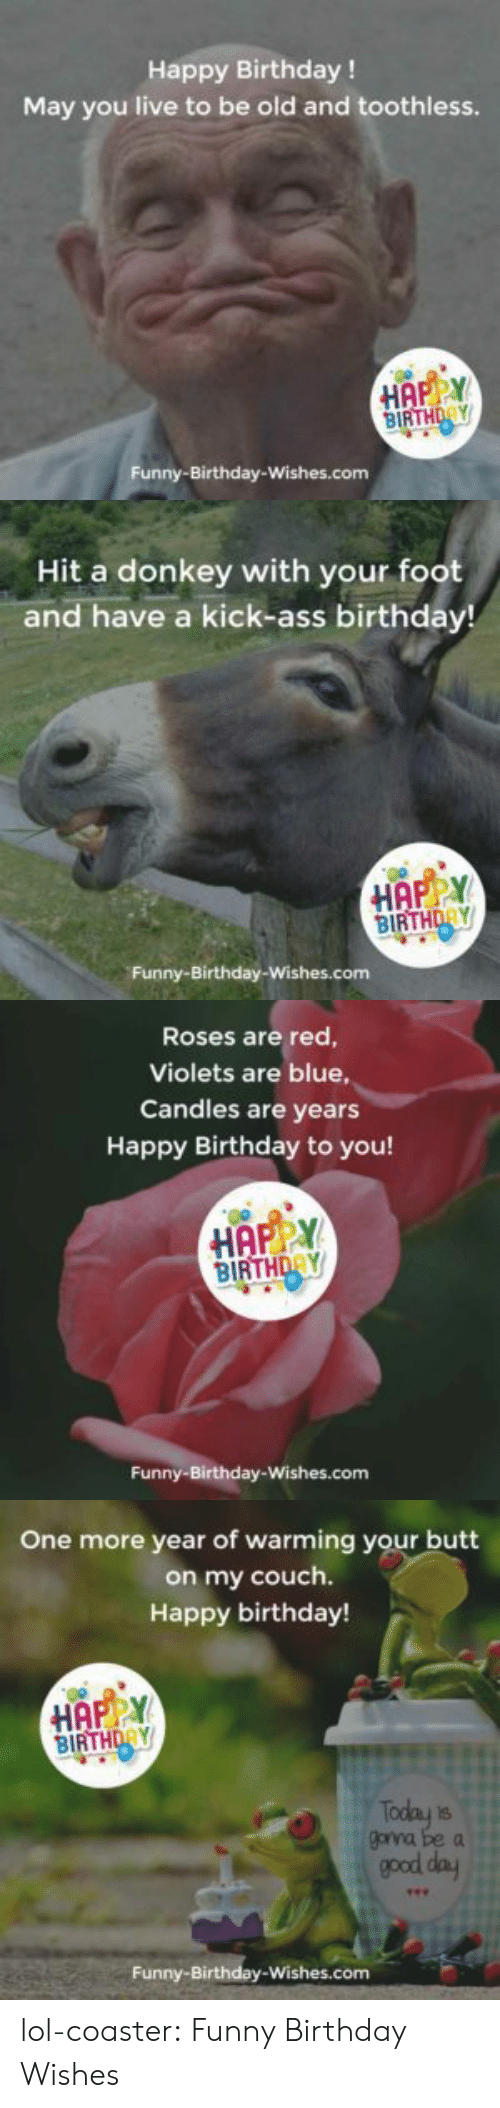 funny birthday: Happy Birthday !  May you live to be old and toothless.  BIRTHDAY  Funny-Birthday-Wishes.com   Hit a donkey with your foot  and have a kick-ass birthday!  HAPY  BIRTHDAY  Funny-Birthday-Wishes.com   Roses are red  Violets are blue,  Candles are years  Happy Birthday to you!  HAPPY  BIRTHDRY  Funny-Birthday-Wishes.com   One more year of warming your butt  on my couch.  Happy birthday!  BIRTHDAY  goyna be a  good day  Funny-Birthday-Wishes.com lol-coaster:  Funny Birthday Wishes